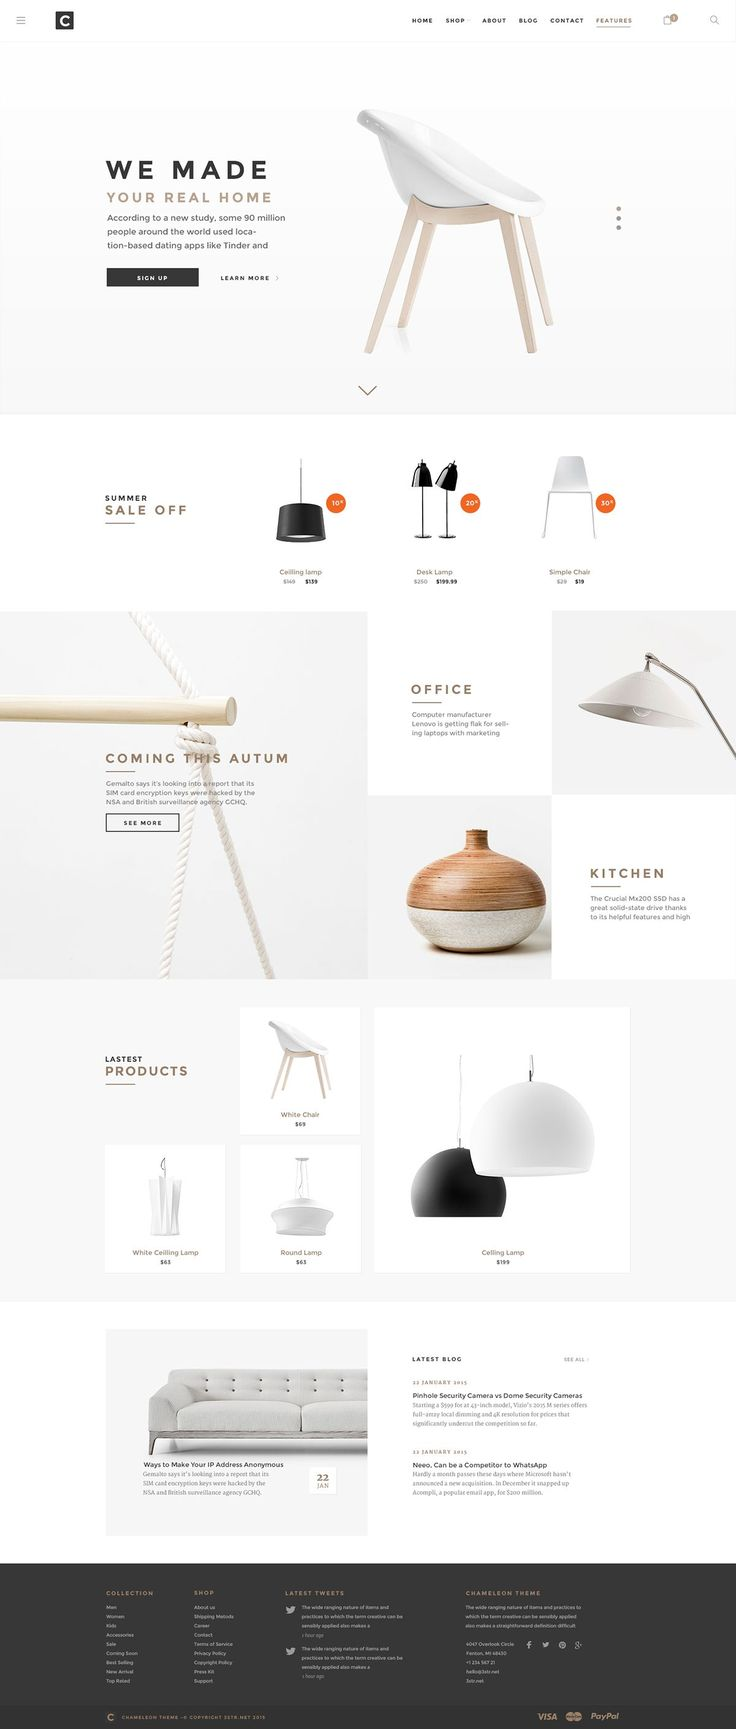 Chameleon Shop PSD Template is an unique eCommerce PSD template for on  online shopping store  Designed base on free font  resizable vector icons  with clean. Best 25  Home goods store ideas on Pinterest   Diy living room